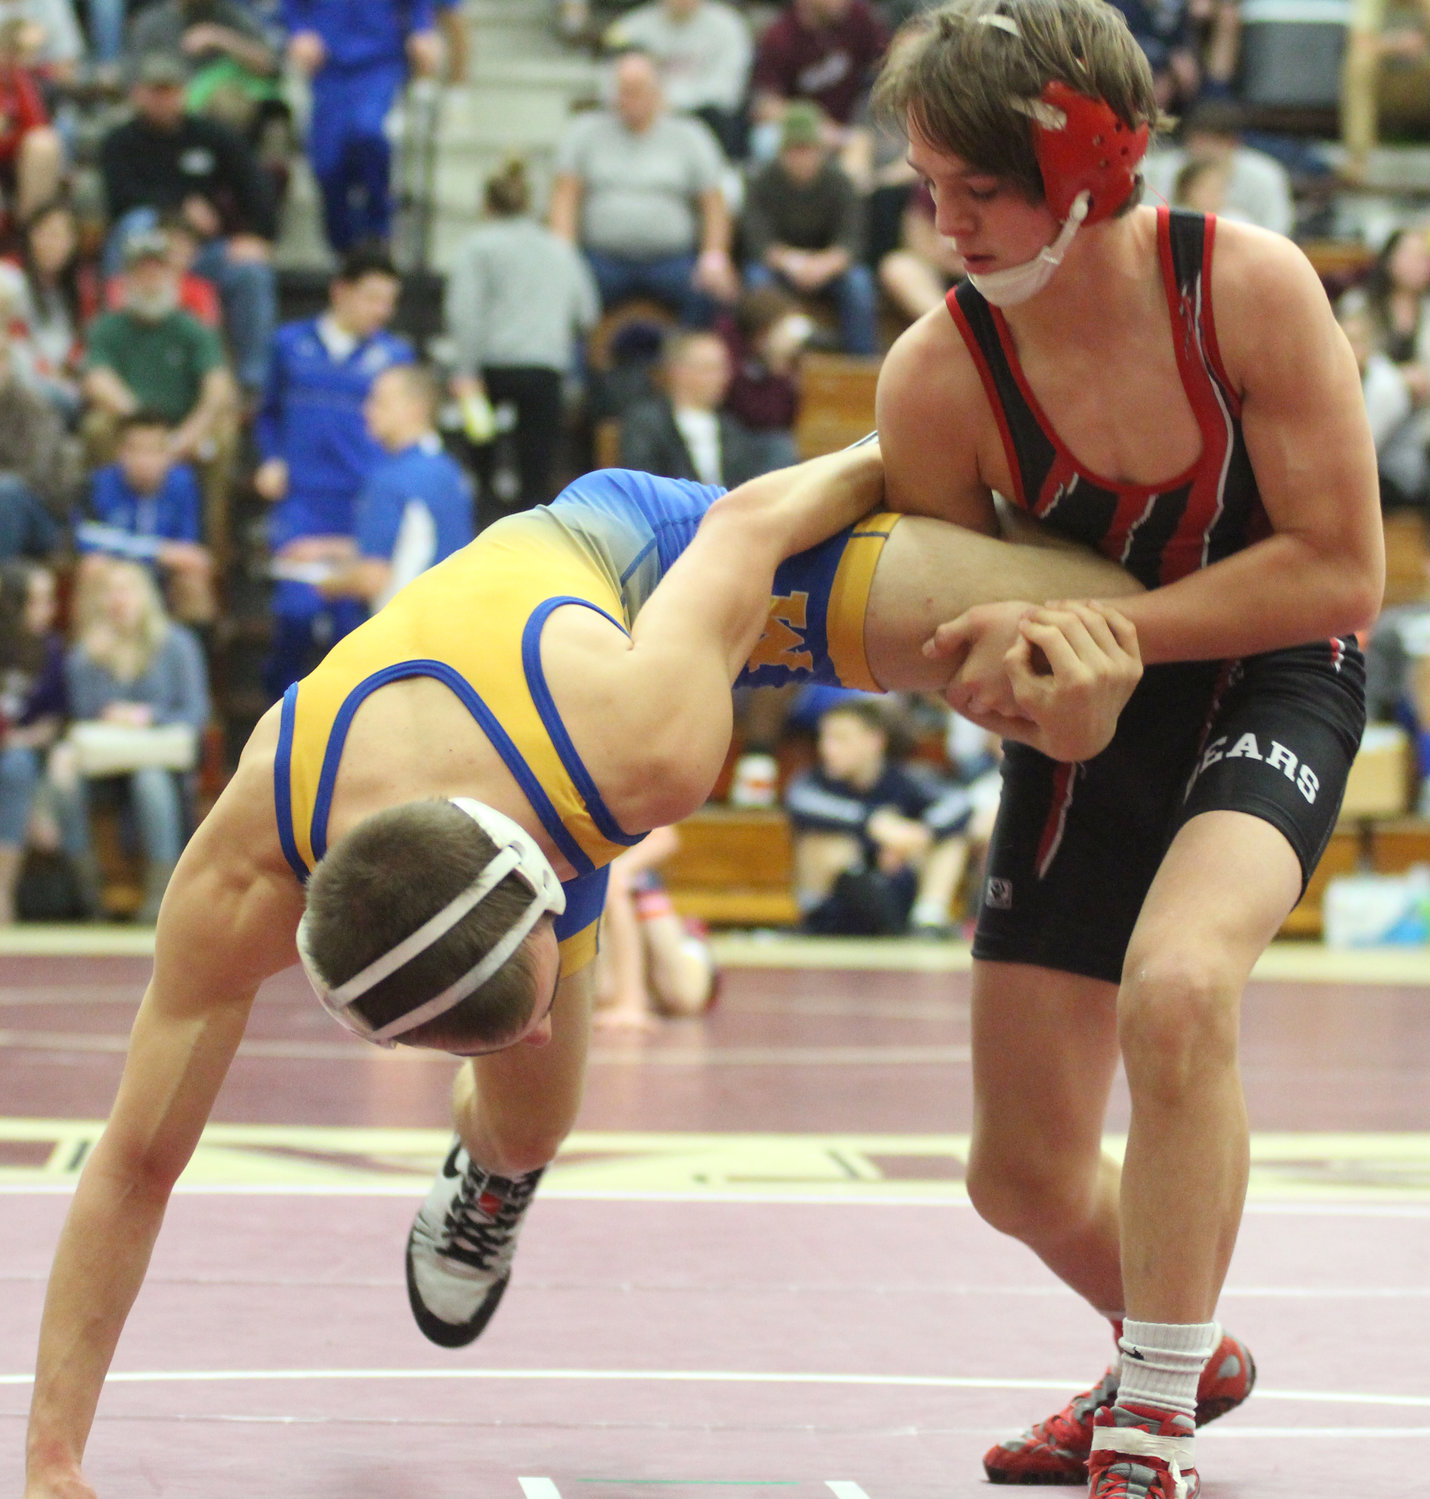 Nate Brady grappled to a 14-5 major decision over Chance Babb of Boyertown in the Governor Mifflin Holiday Tournament.